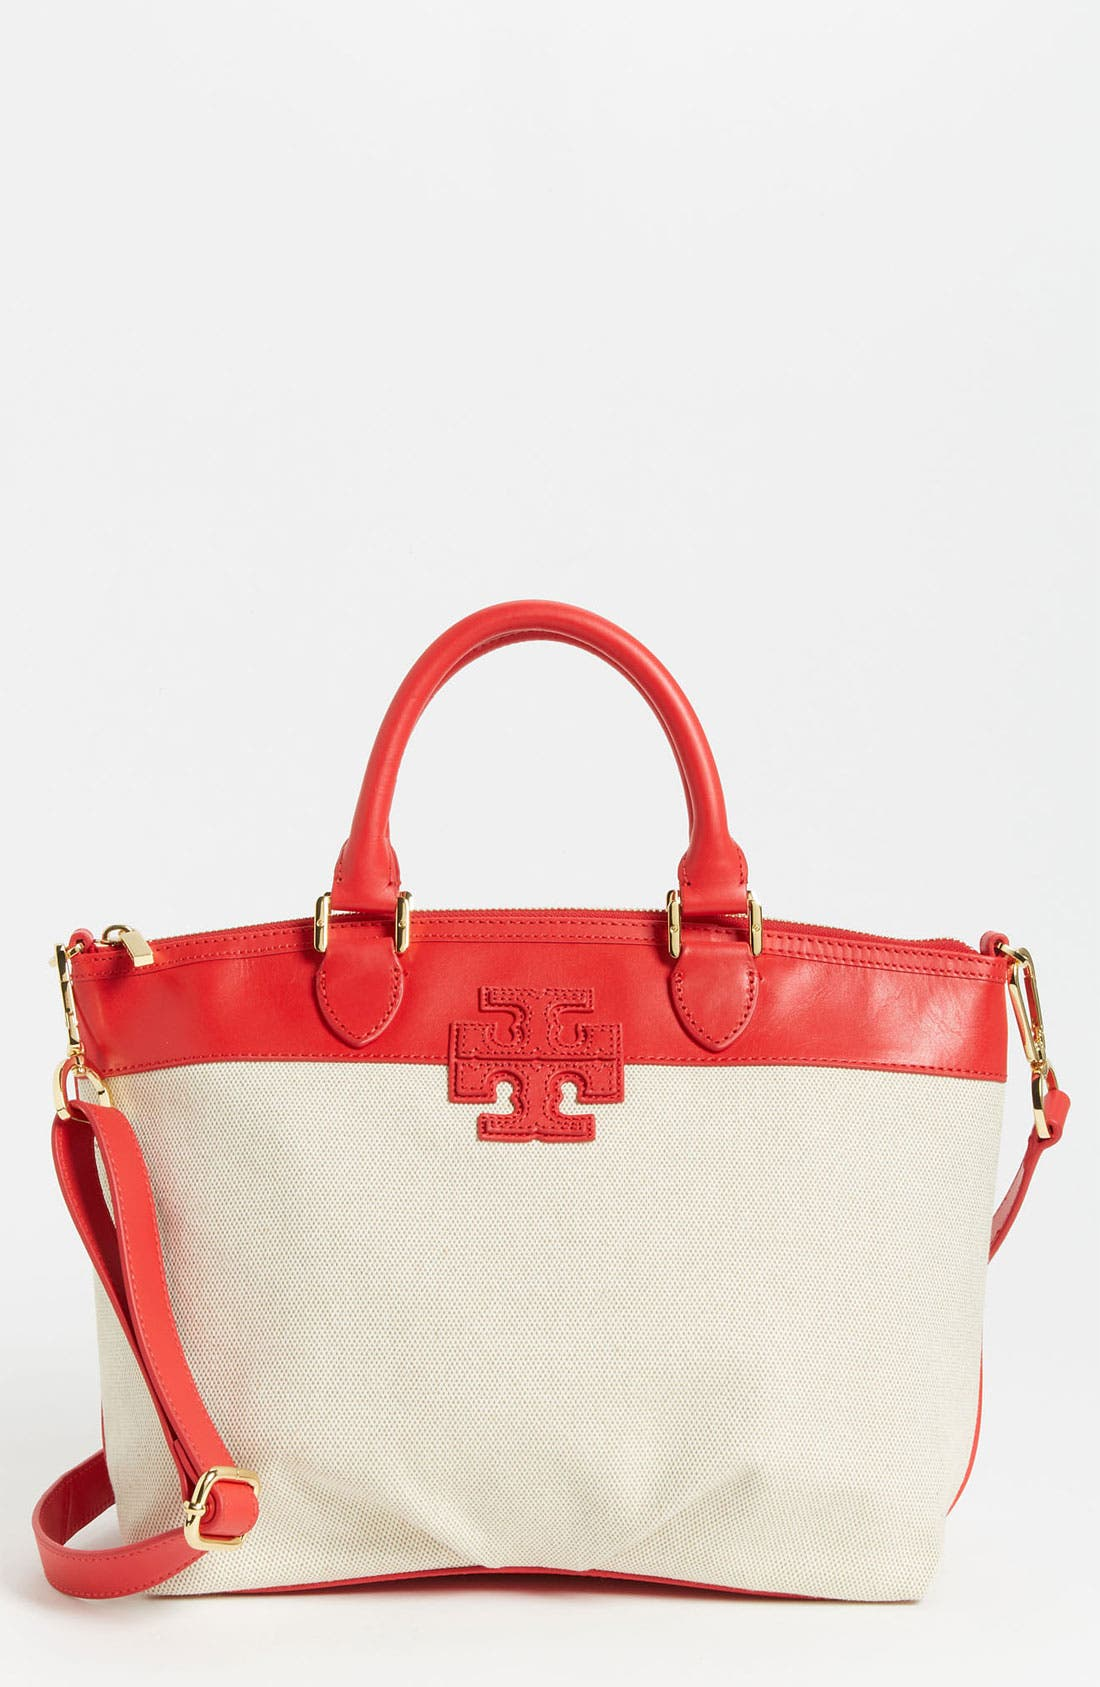 Alternate Image 1 Selected - Tory Burch 'Stacked T - Small' Satchel